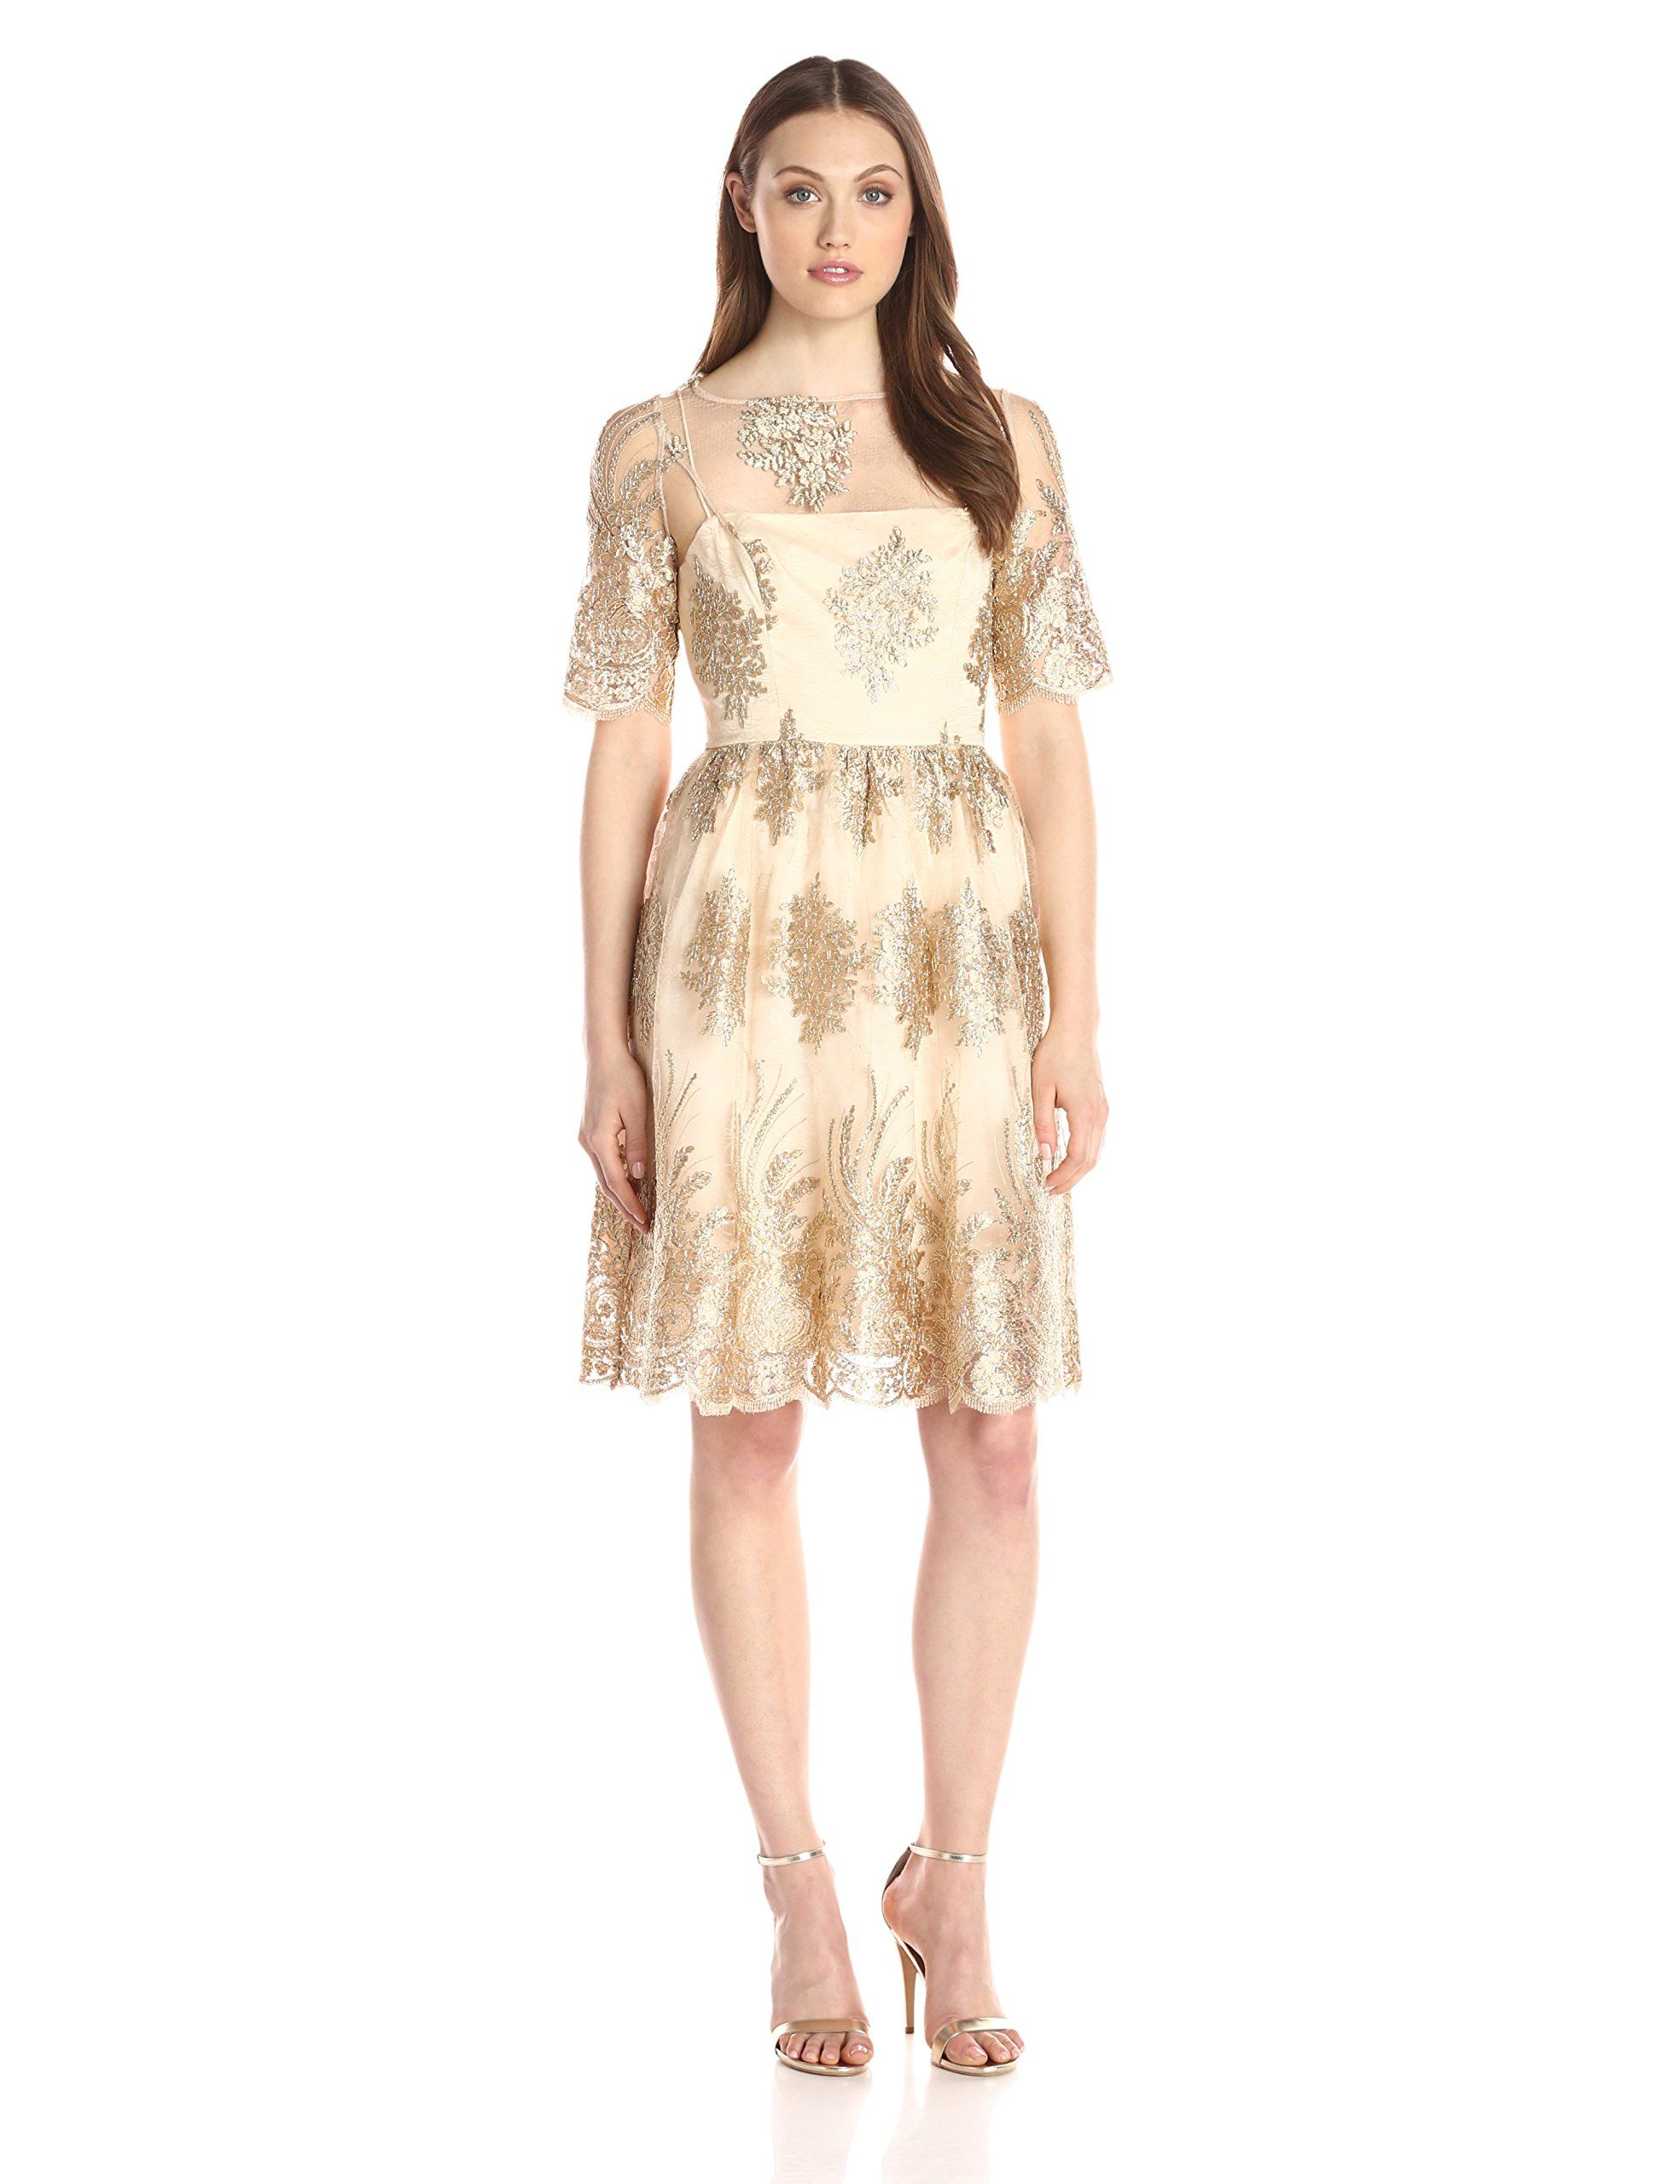 Adrianna papell womenus metallic corded lace party dress gold